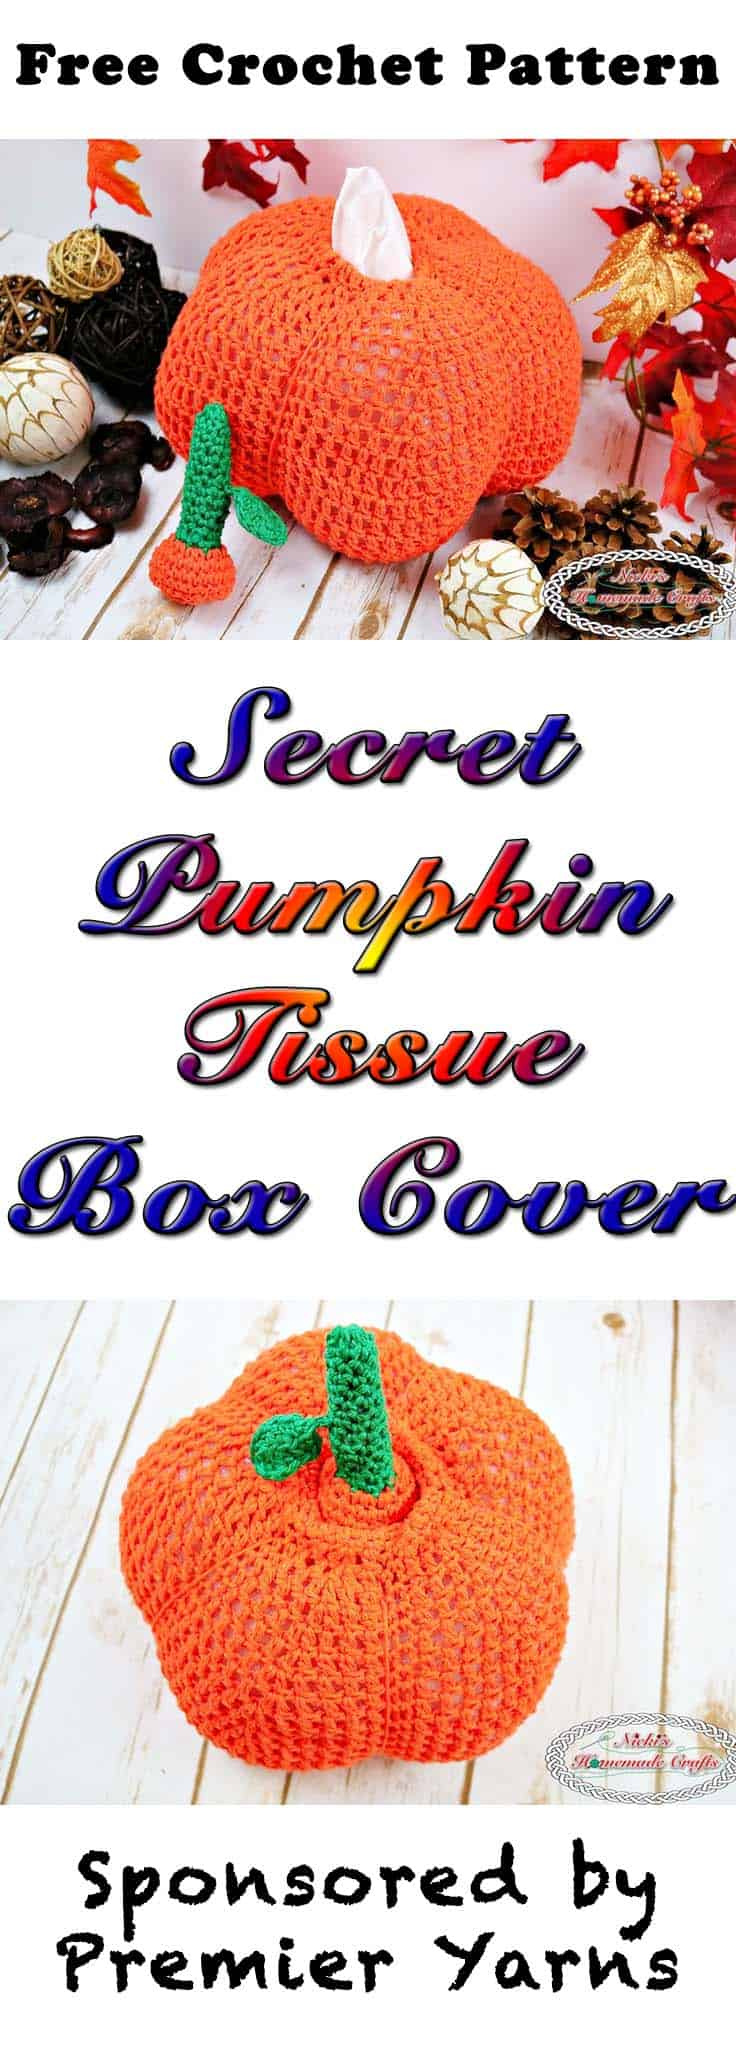 Secret Pumpkin Tissue Box Cover - Free Crochet Pattern - by Nicki's Homemade Crafts #crochet #tissuebox #pumpkin #freecrochetpattern #halloween #thanksgiving